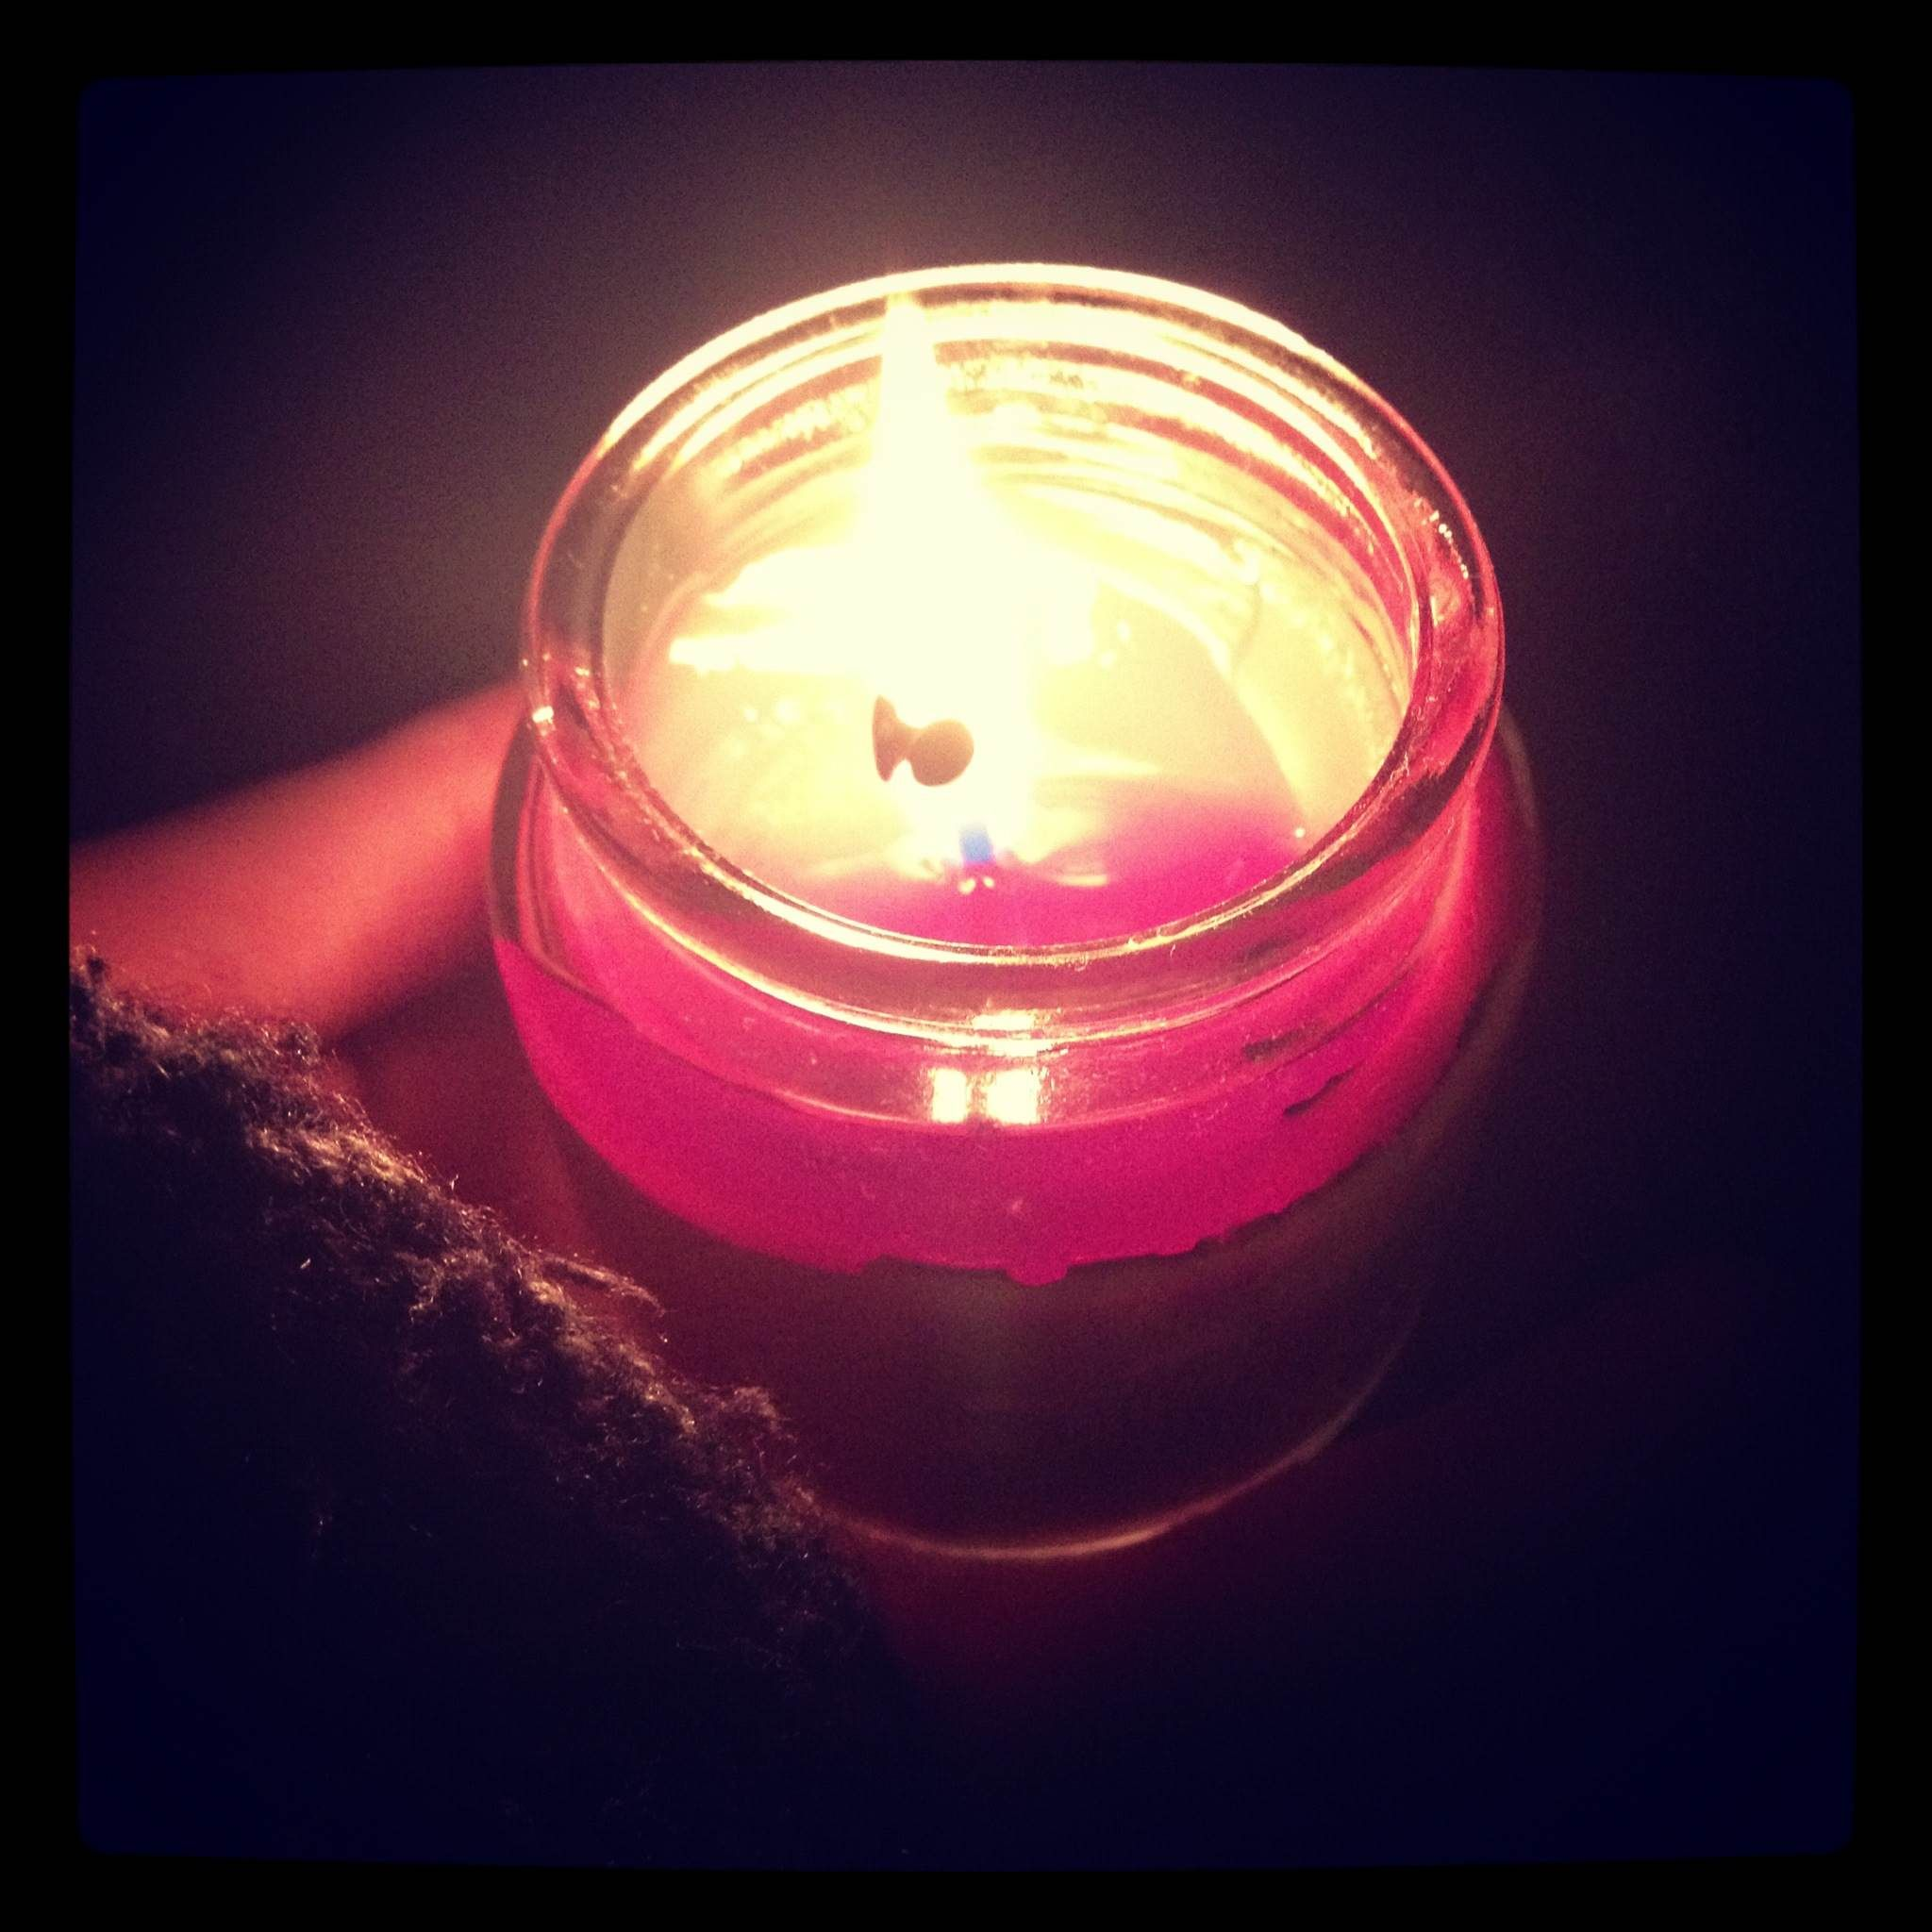 When Hurricane Sandy struck and thought I was cool for taking a picture of my candle